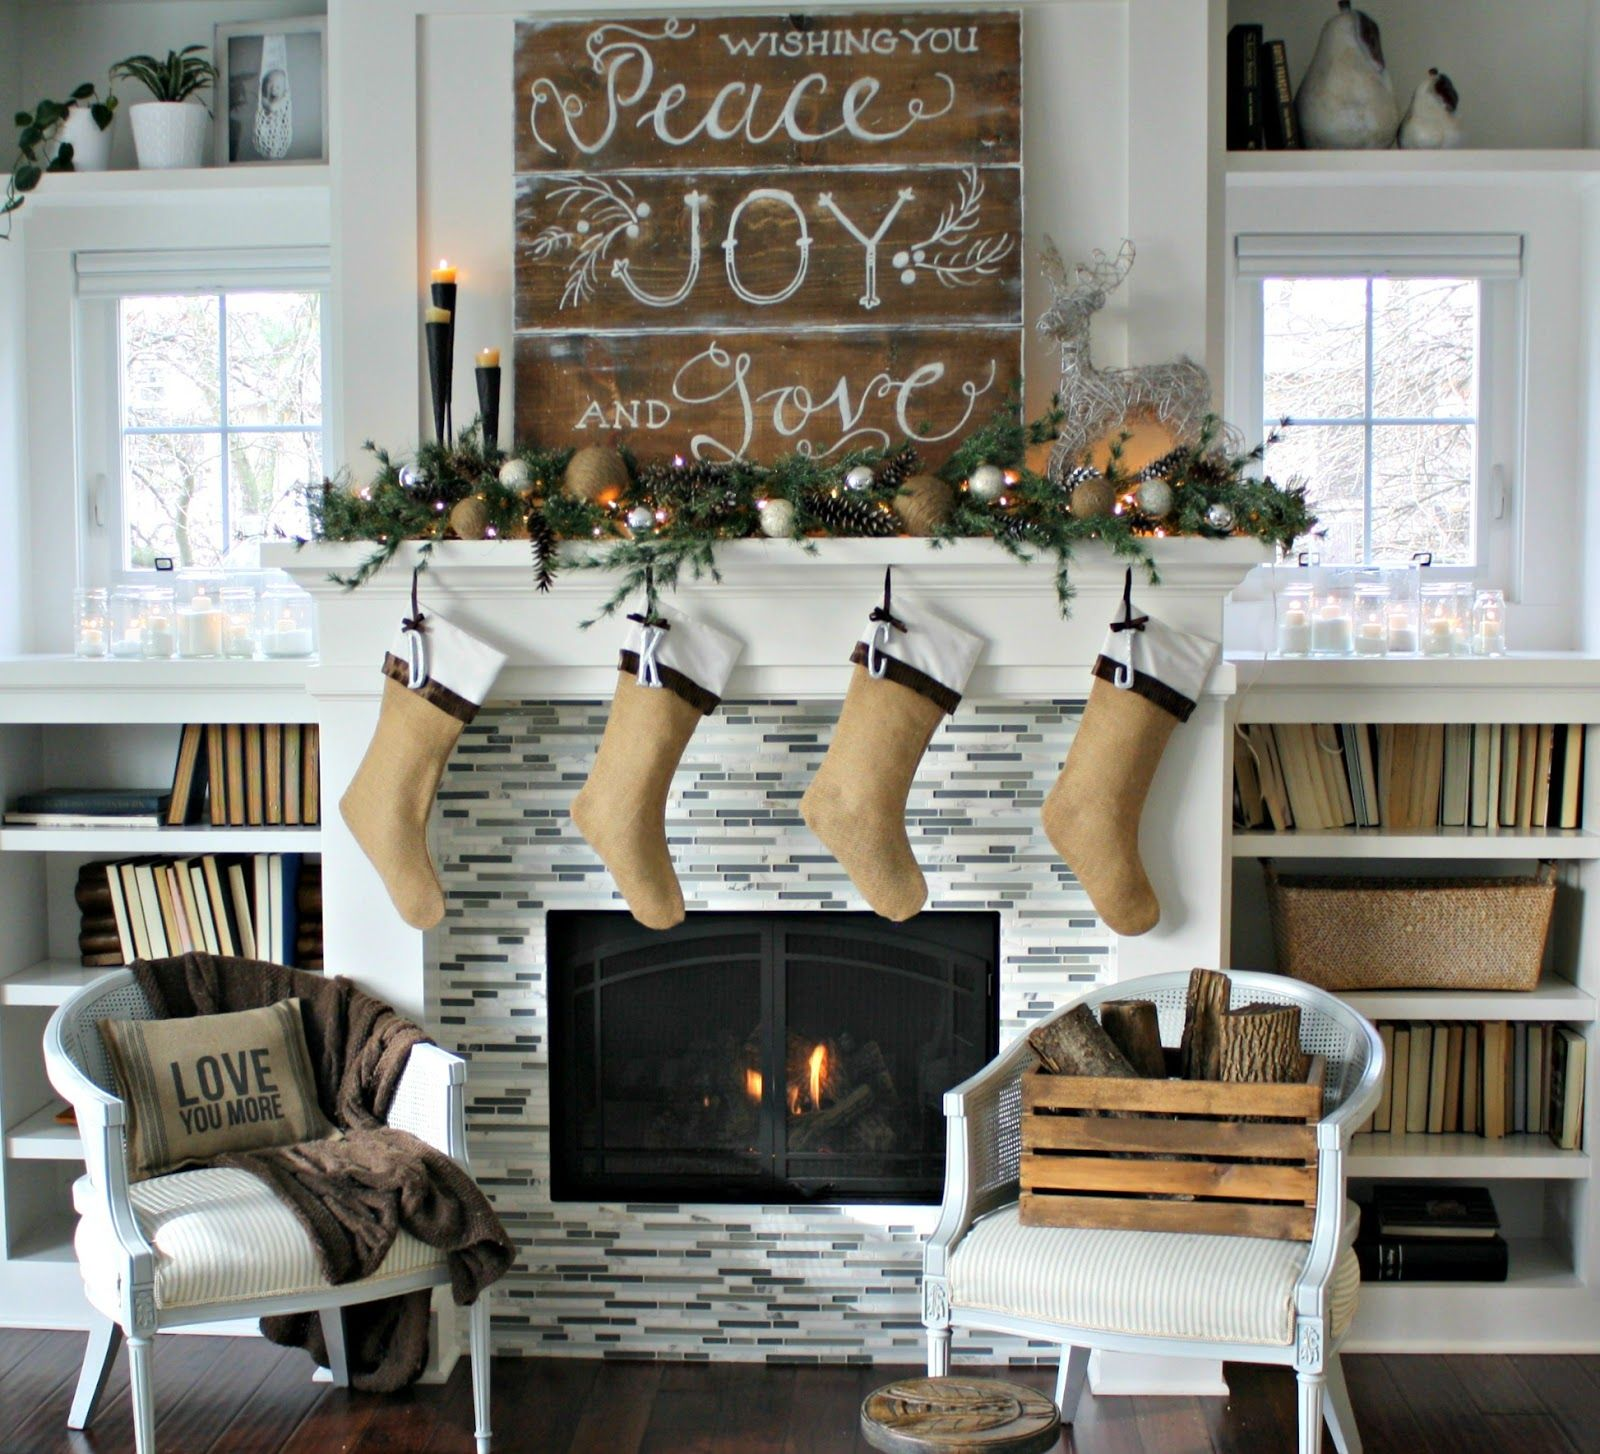 Country christmas mantel decor - Christmas Decor Mantle Decorated With Diy Rustic Painted Sign Candles Greenery Stockings